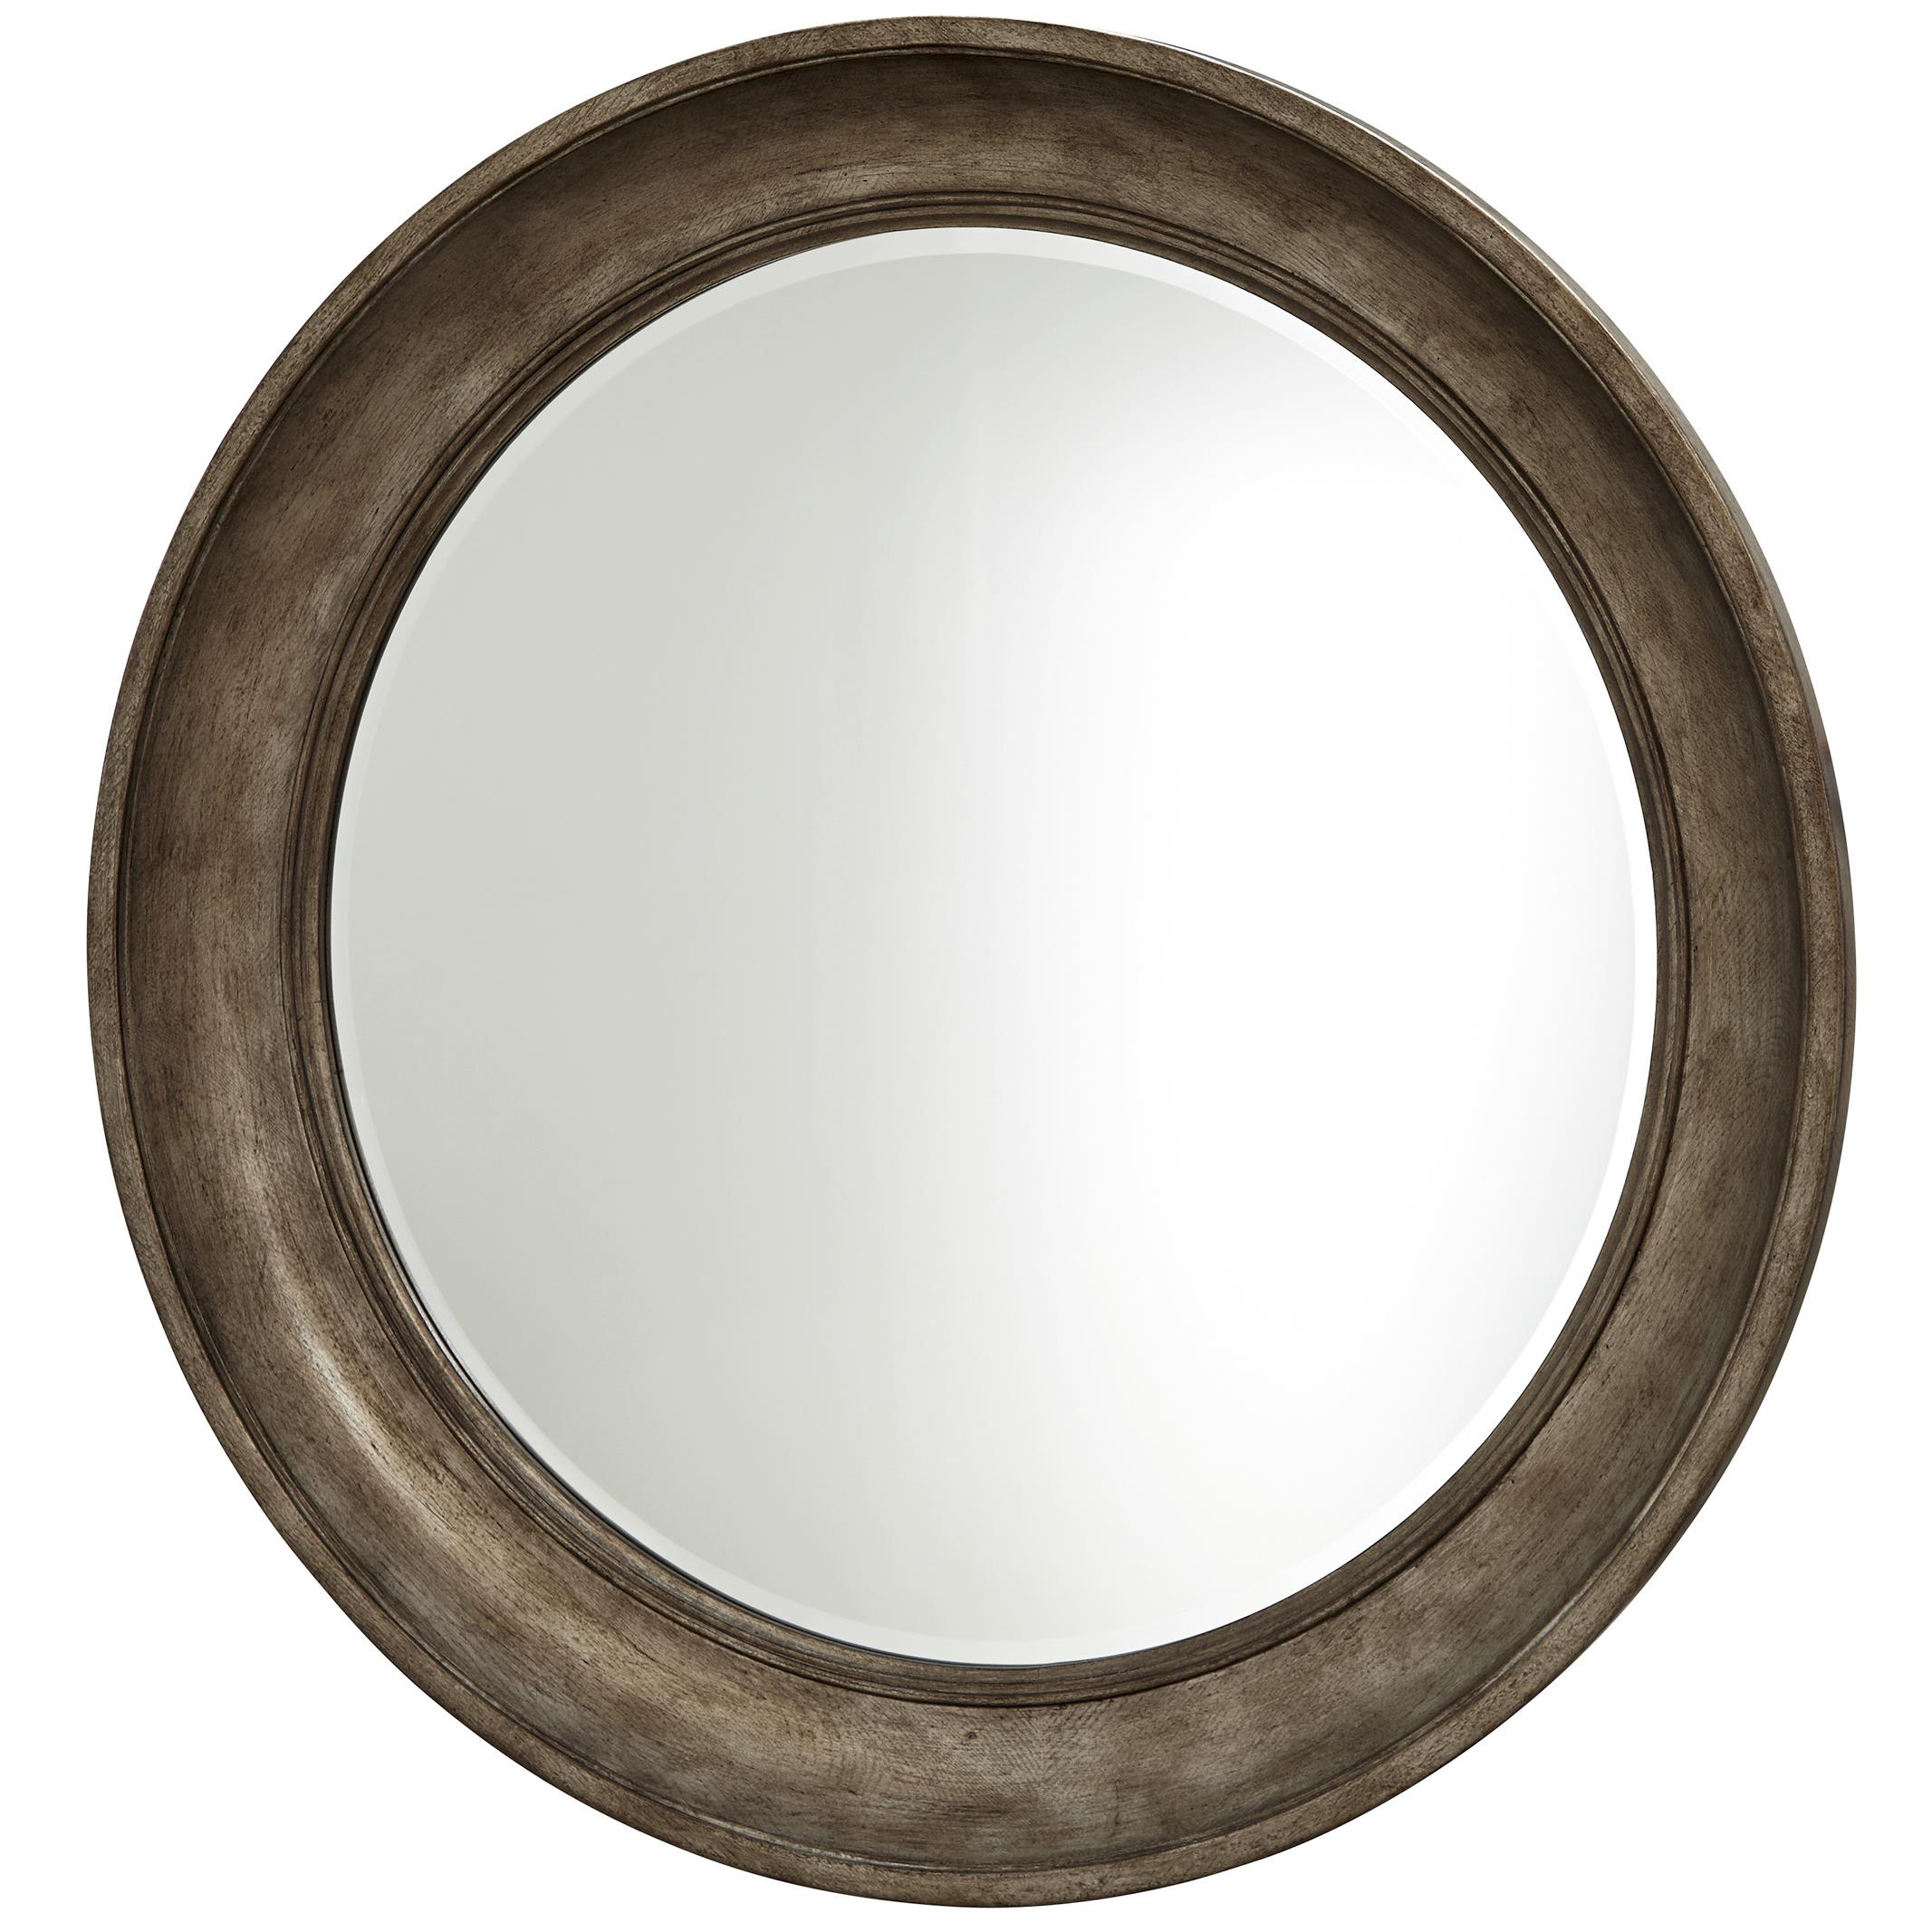 Universal California - Hollywood Hills Round Mirror - Item Number: 47509M